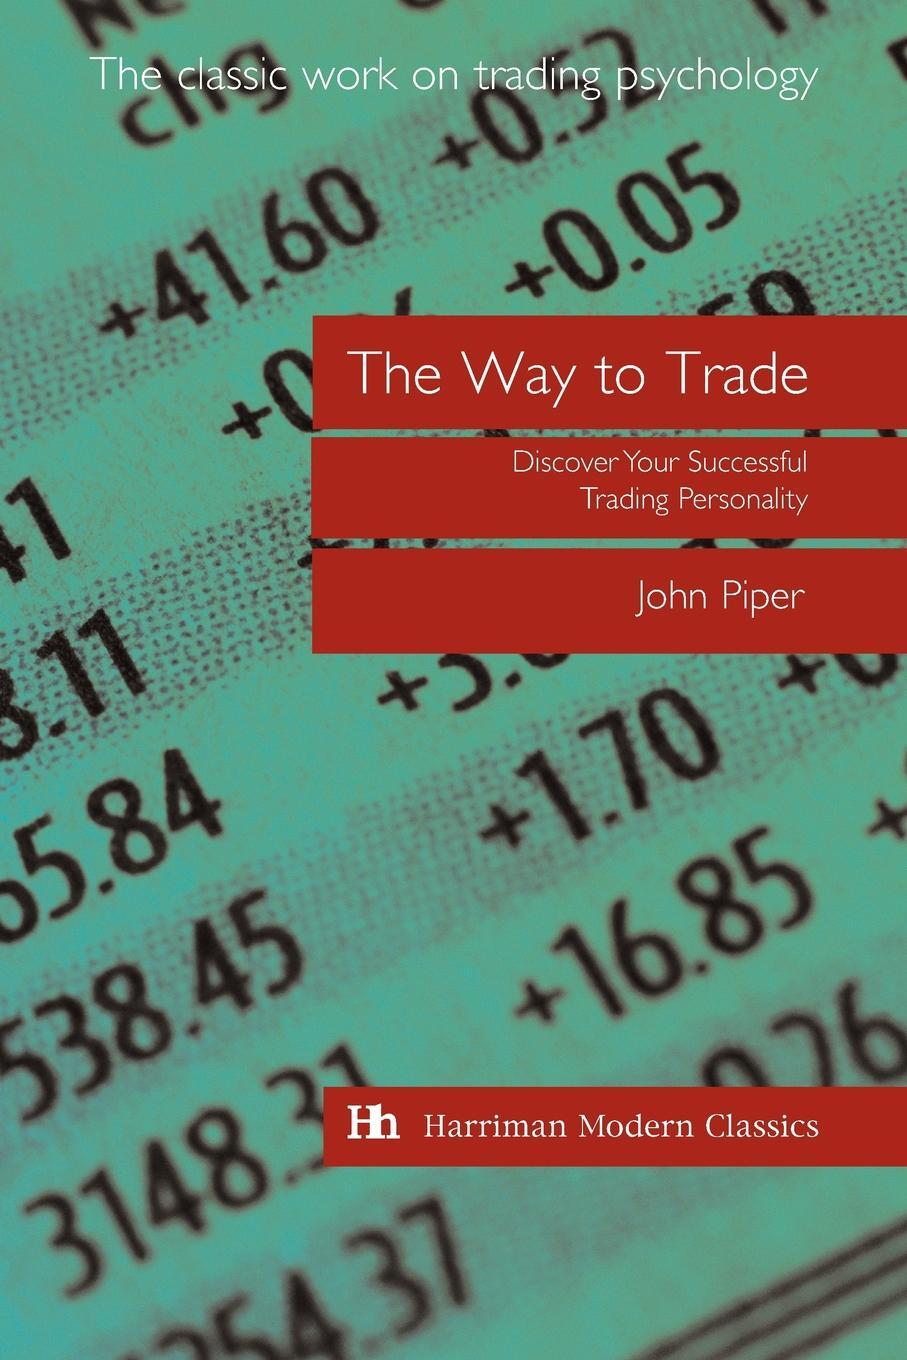 The Way to Trade. Discover Your Successful Trading Personality